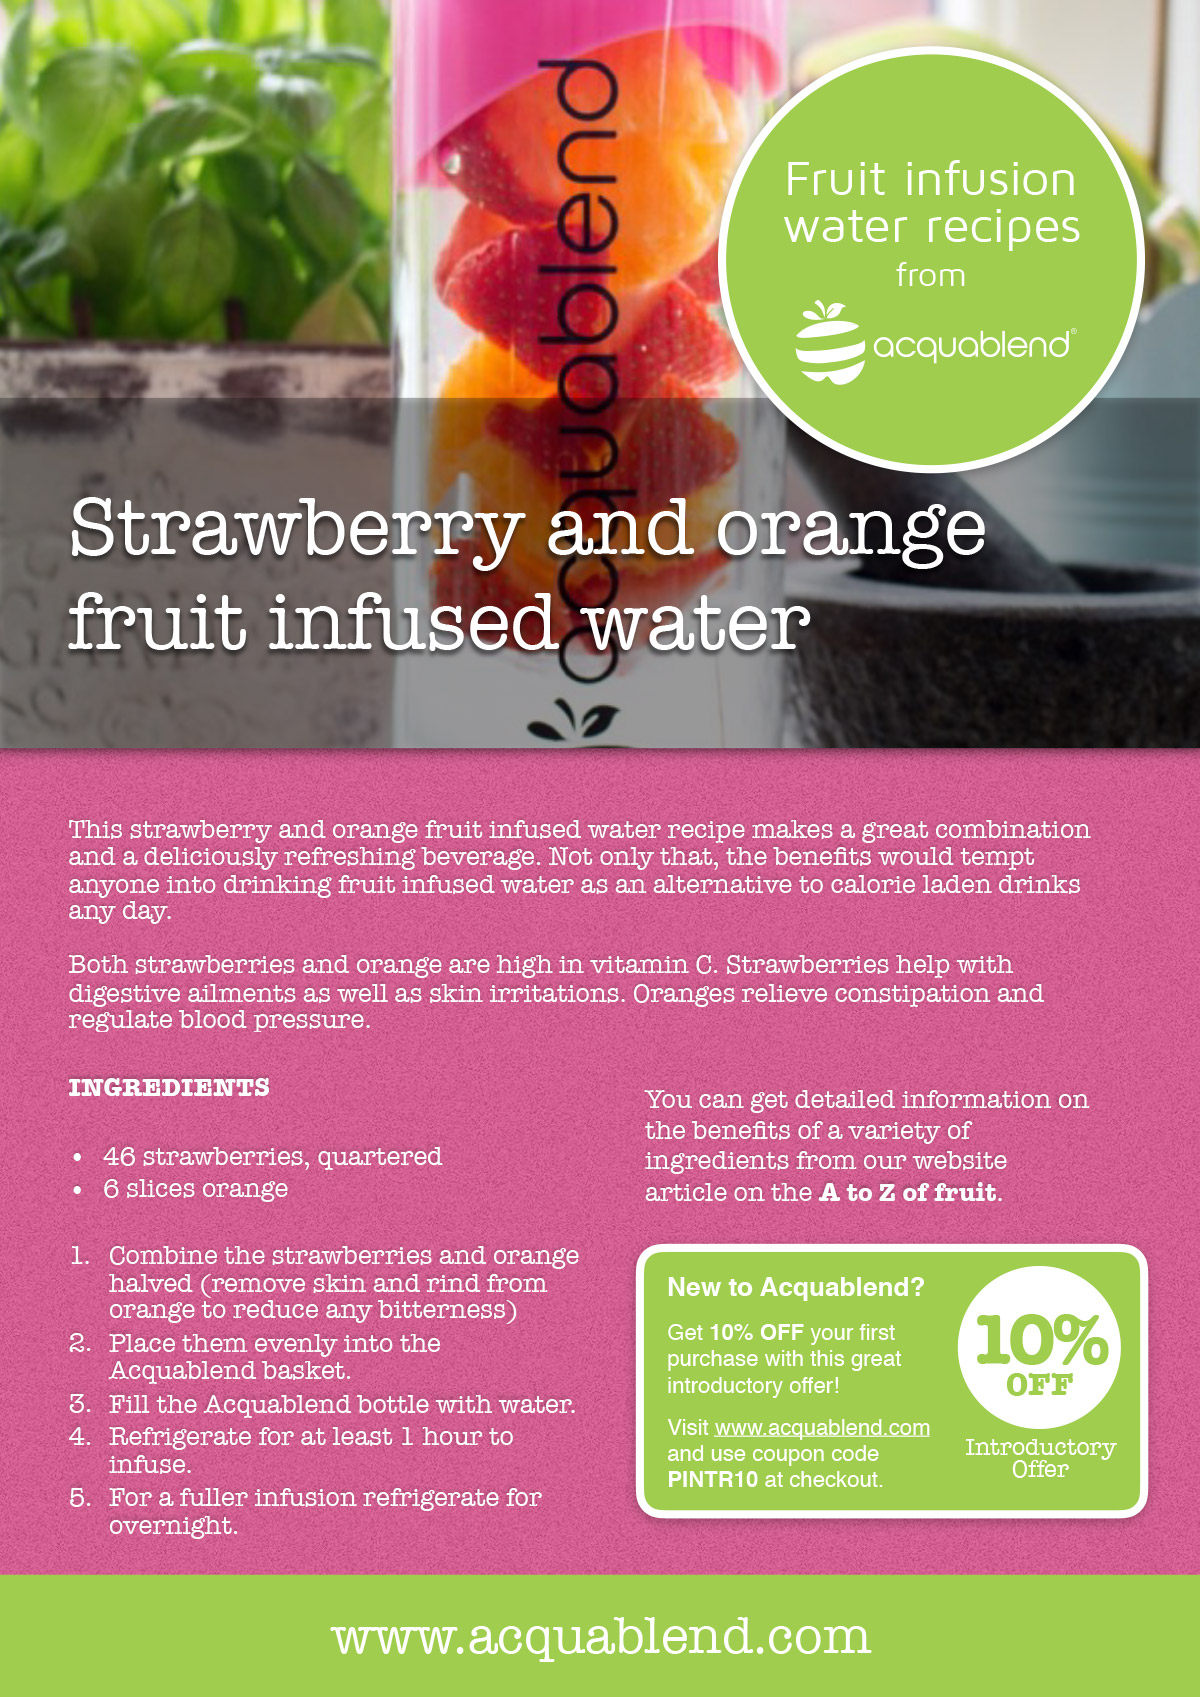 Strawberry and orange fruit infused water recipe.